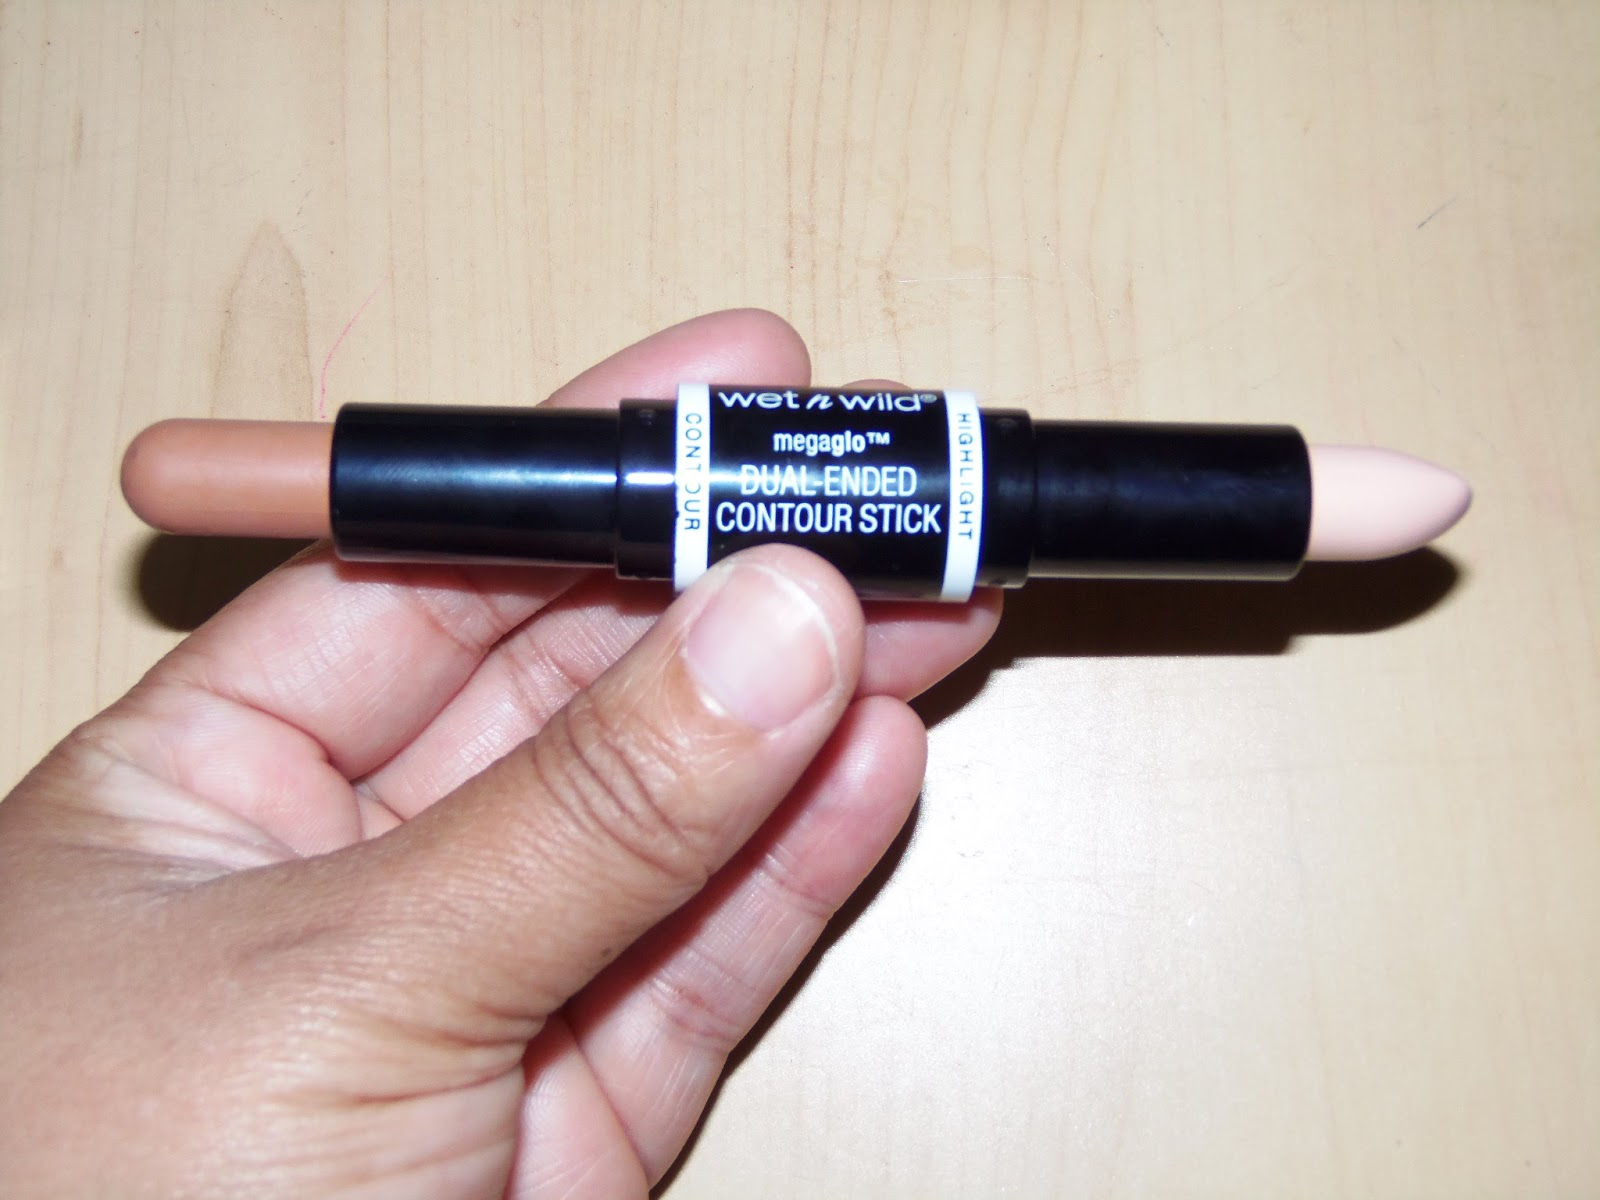 Wet N Wild Megaglo Dual Ended Contour Stick Swatches And Mega Glo Light Medium Few Cents You Will Not Regret Purchasing The It Is A Great Deal Dont Forget Product To Have In Your Makeup Kit Or